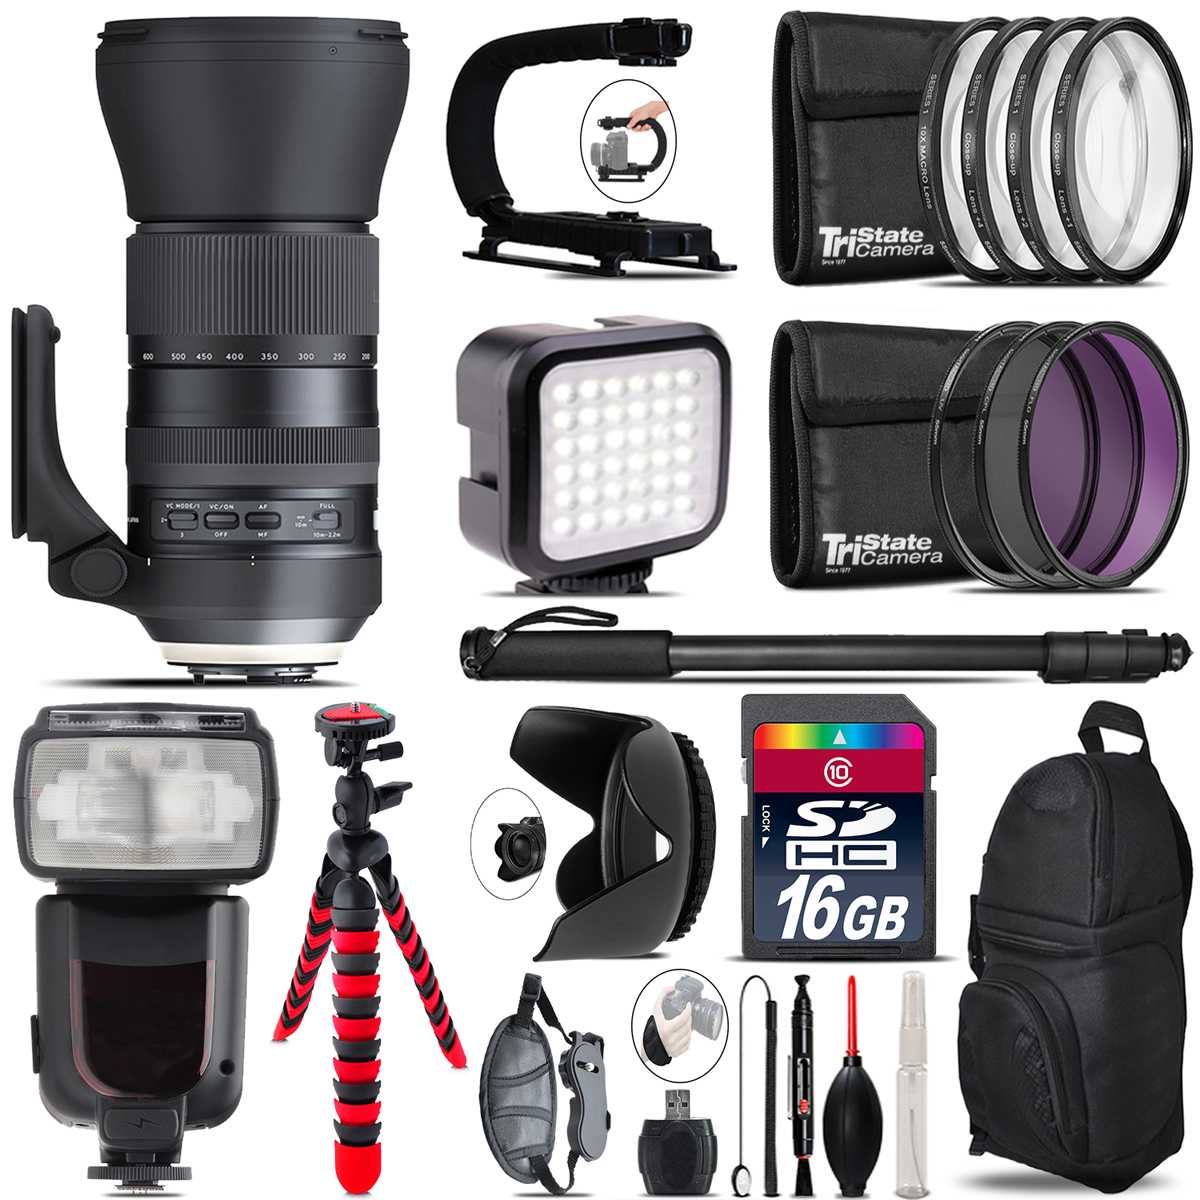 Tamron 150-600mm G2 for Nikon - Video Kit + Pro Flash - 16GB Accessory Bundle *FREE SHIPPING*